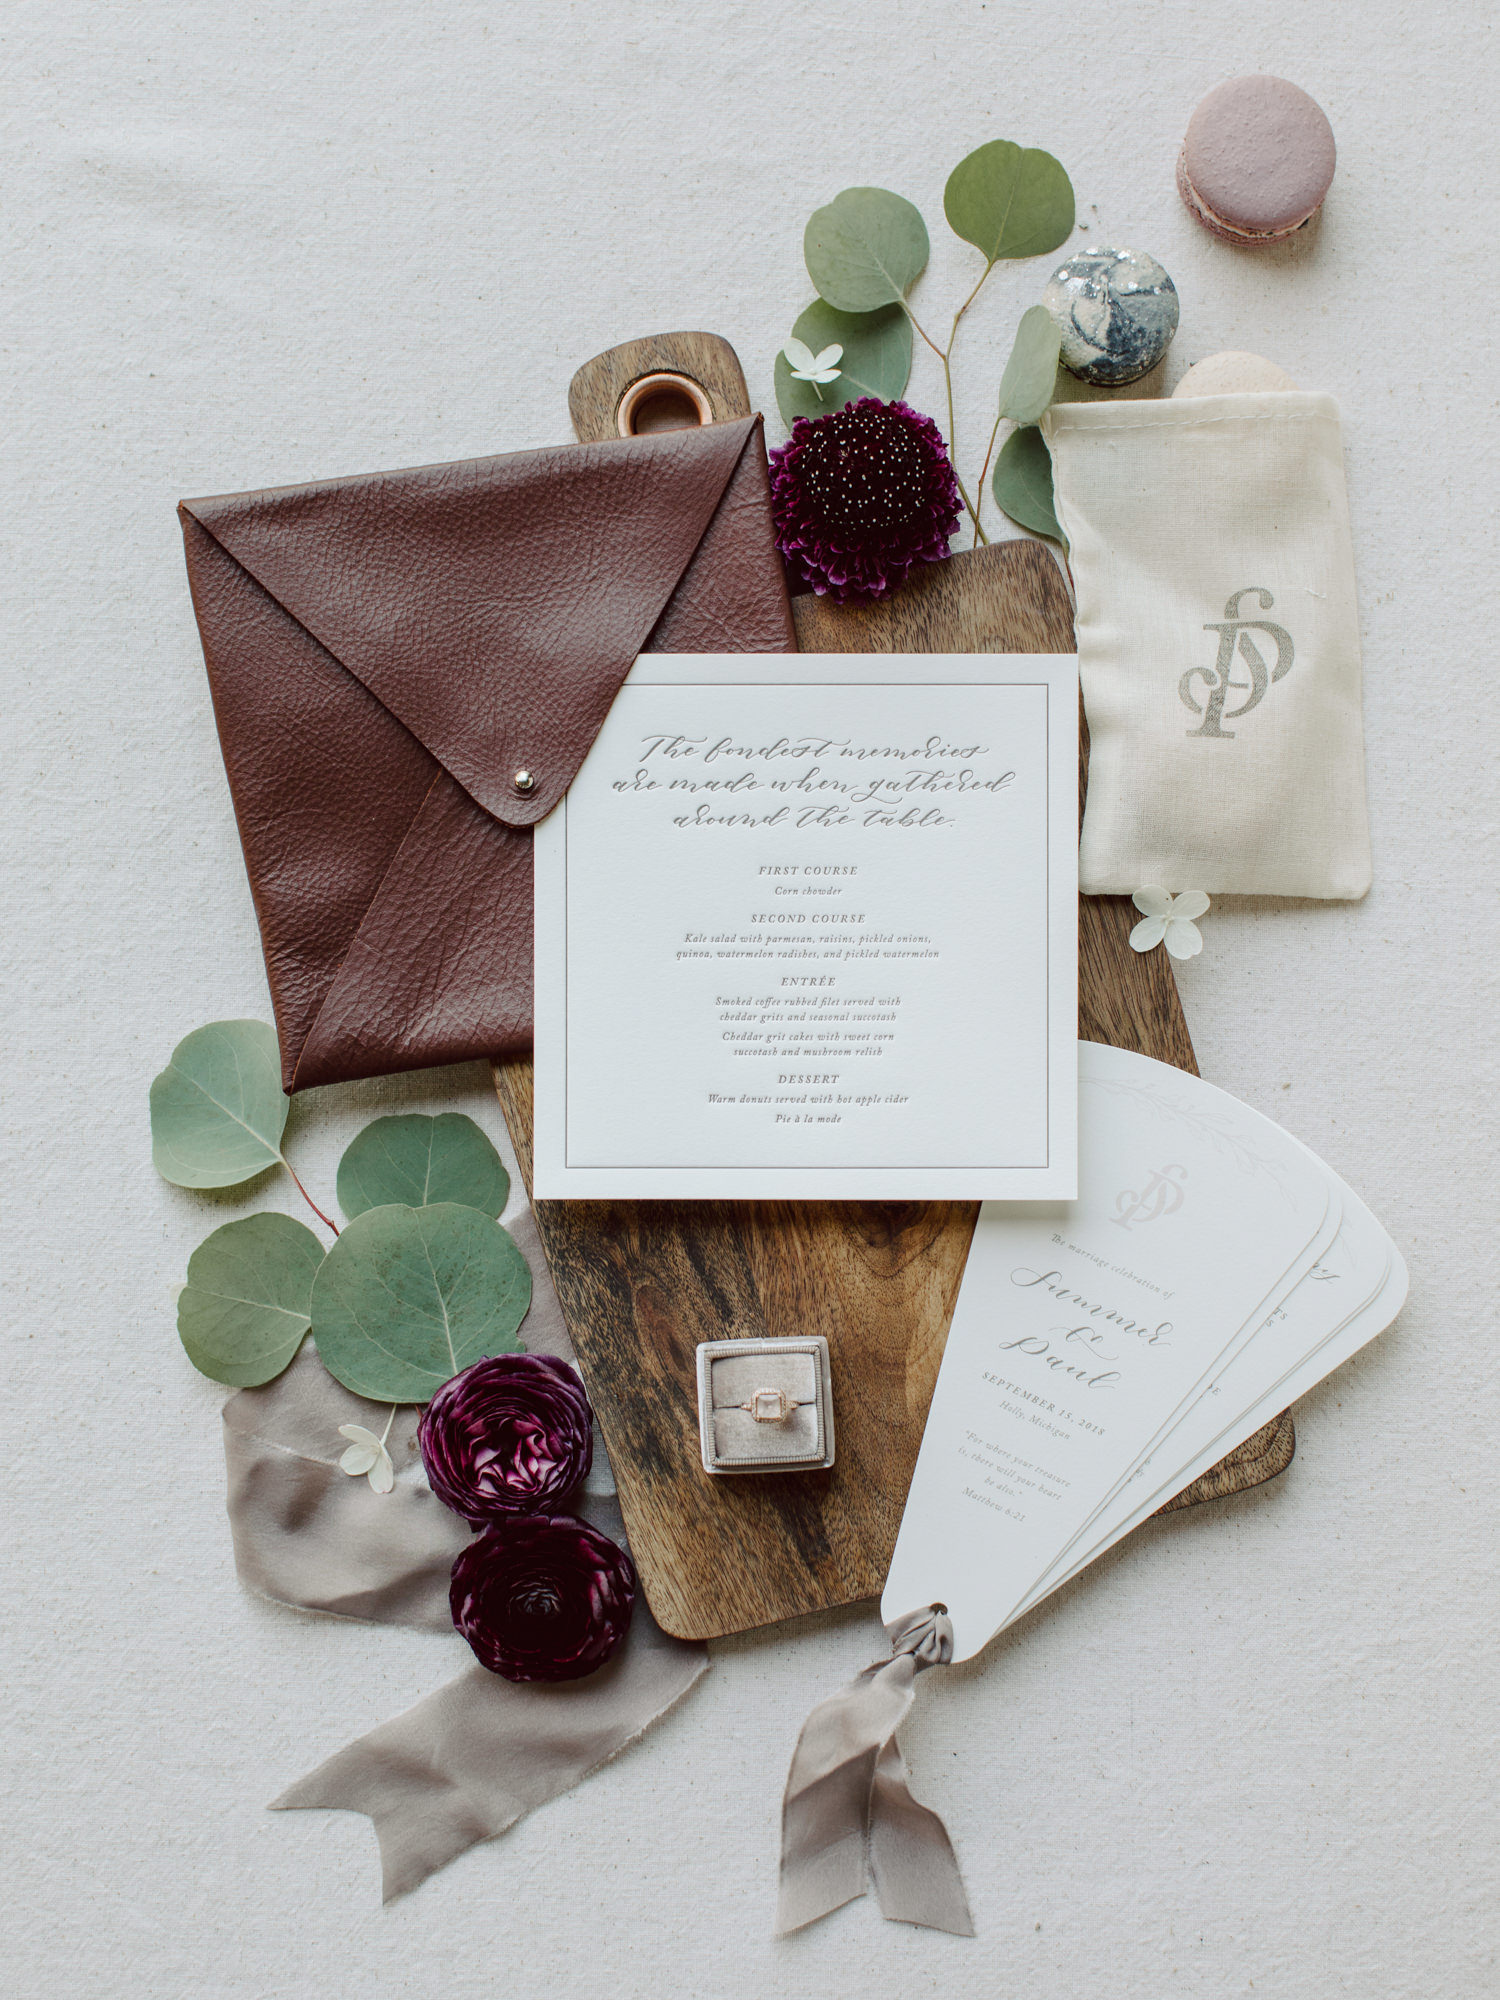 Engraved invitations with leather envelope - Photo by Benj Haisch